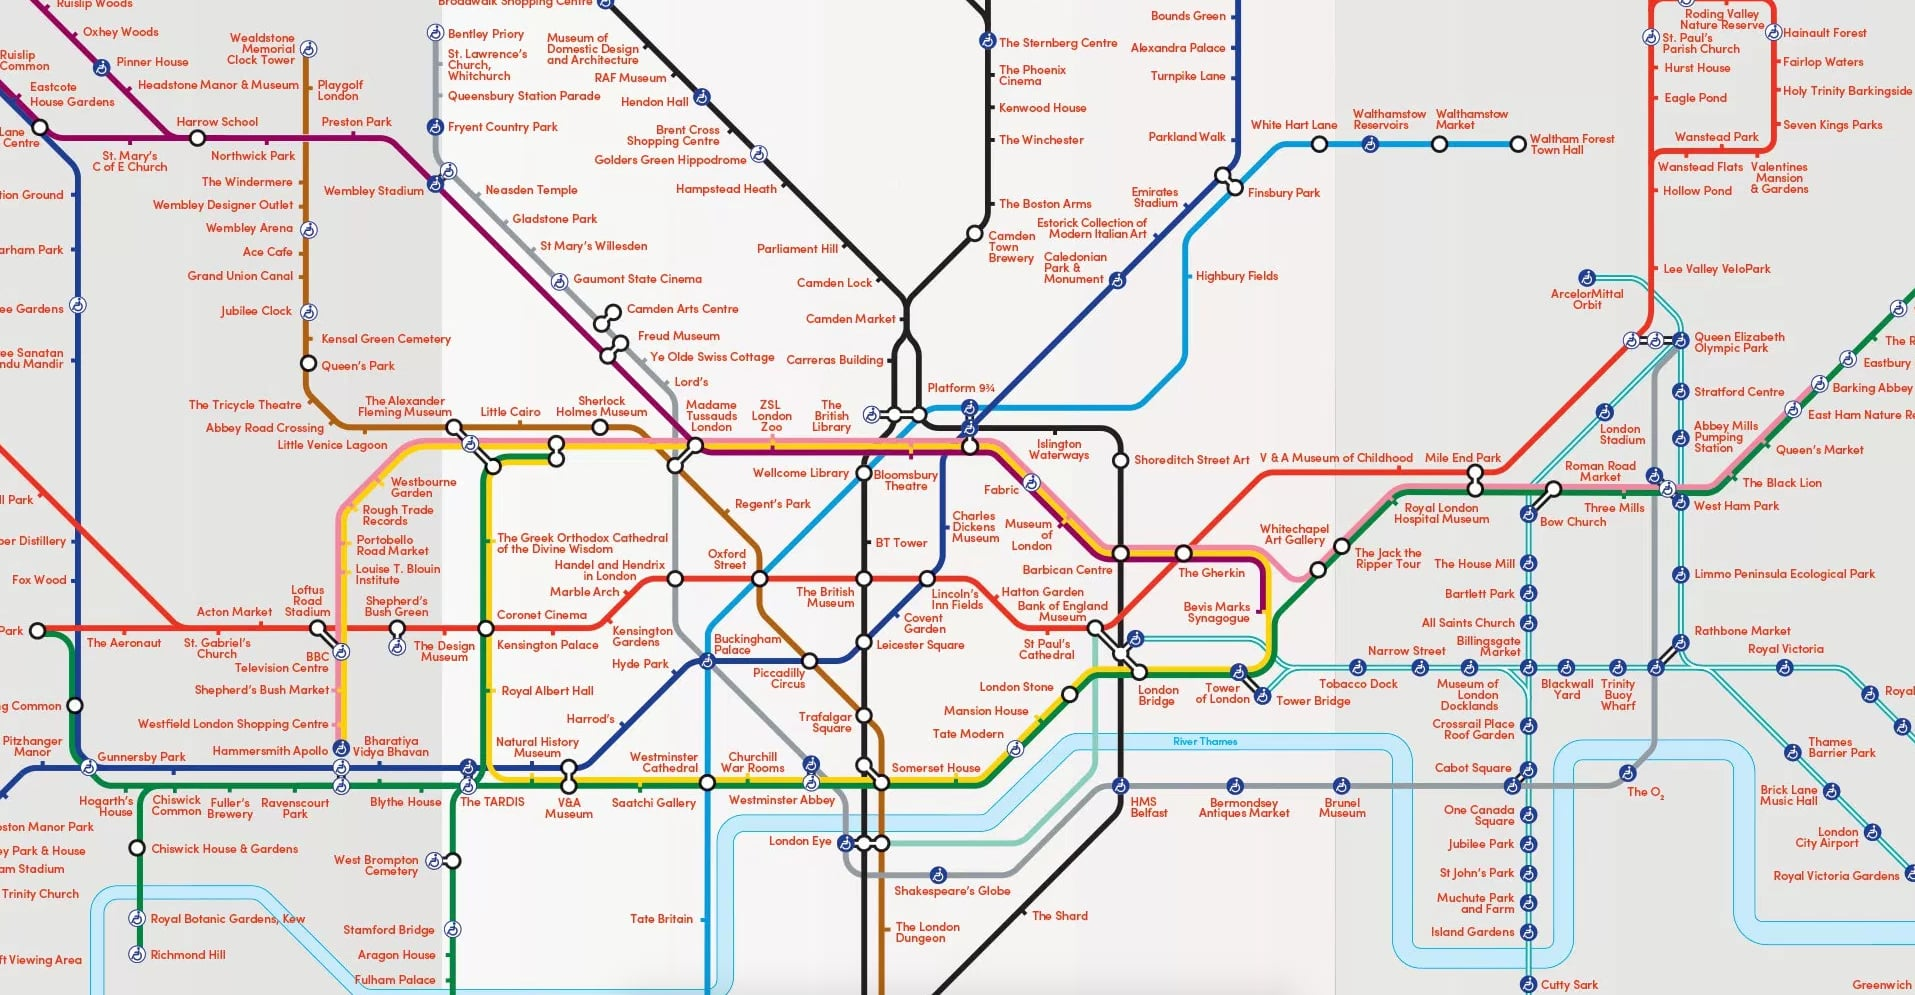 London Map Attractions.London Map Of Tourist Attractions Popsugar Smart Living Uk